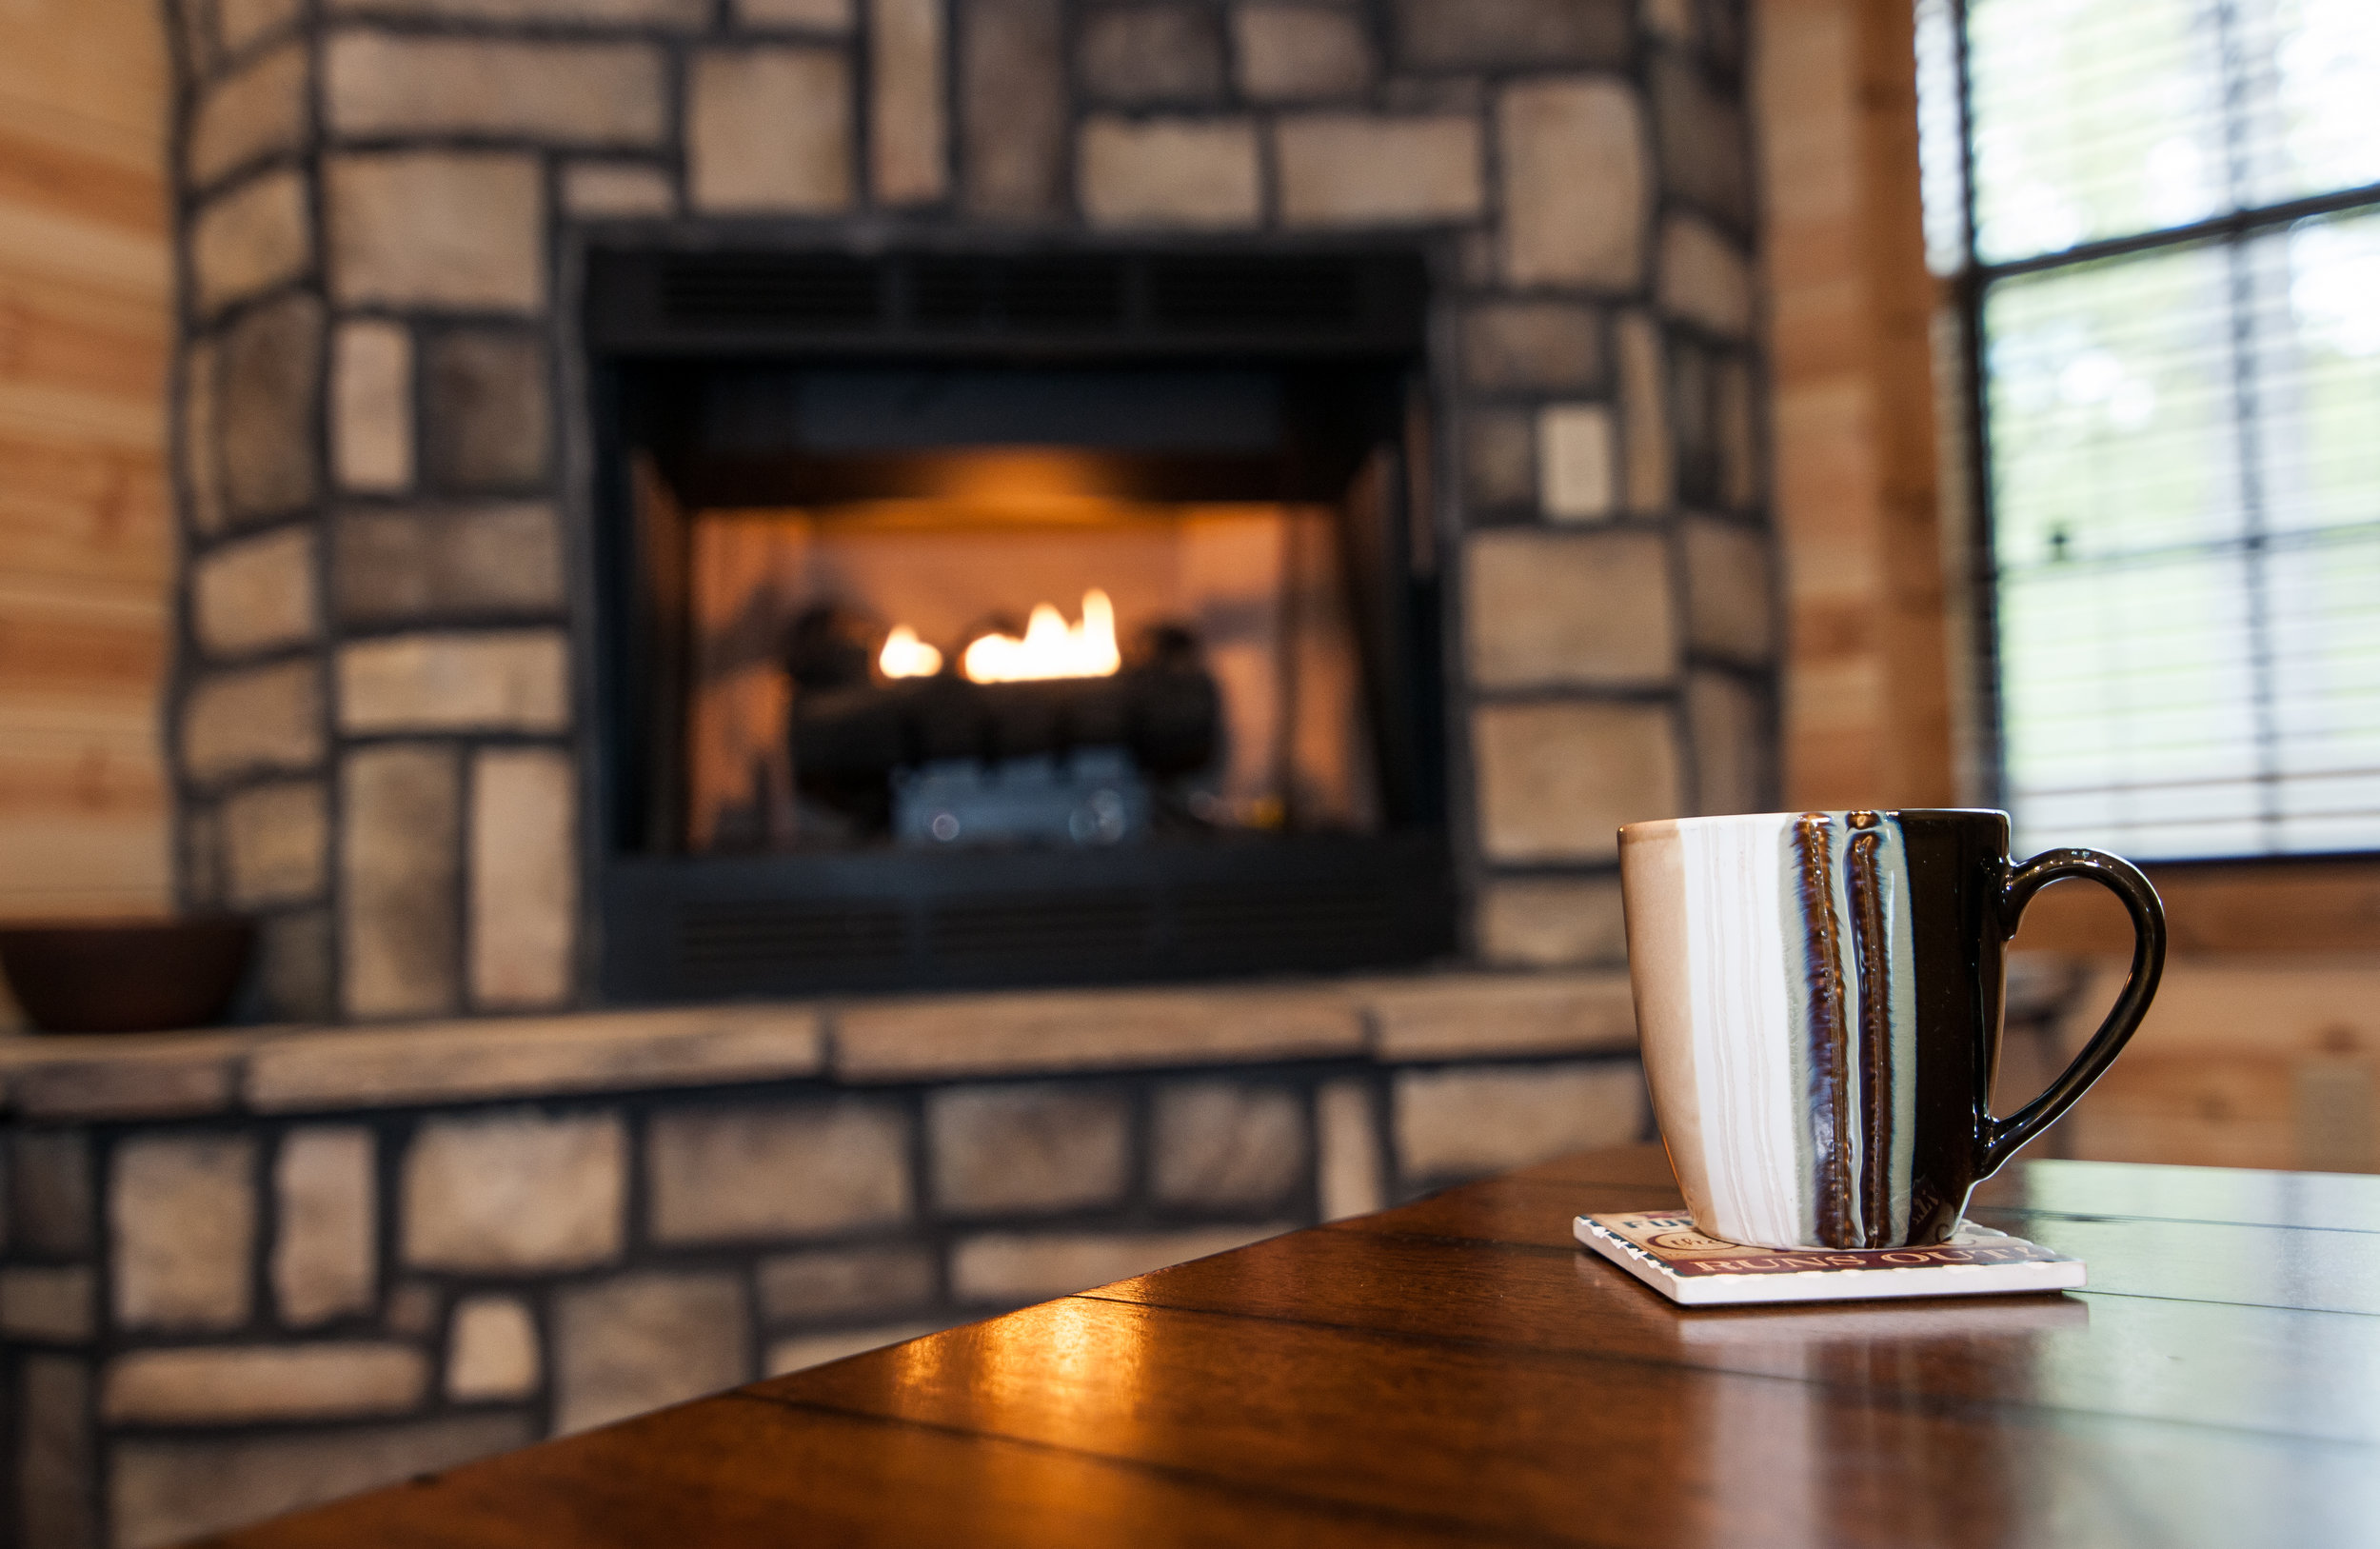 Coffee Cup with fireplace in background.jpg.jpg